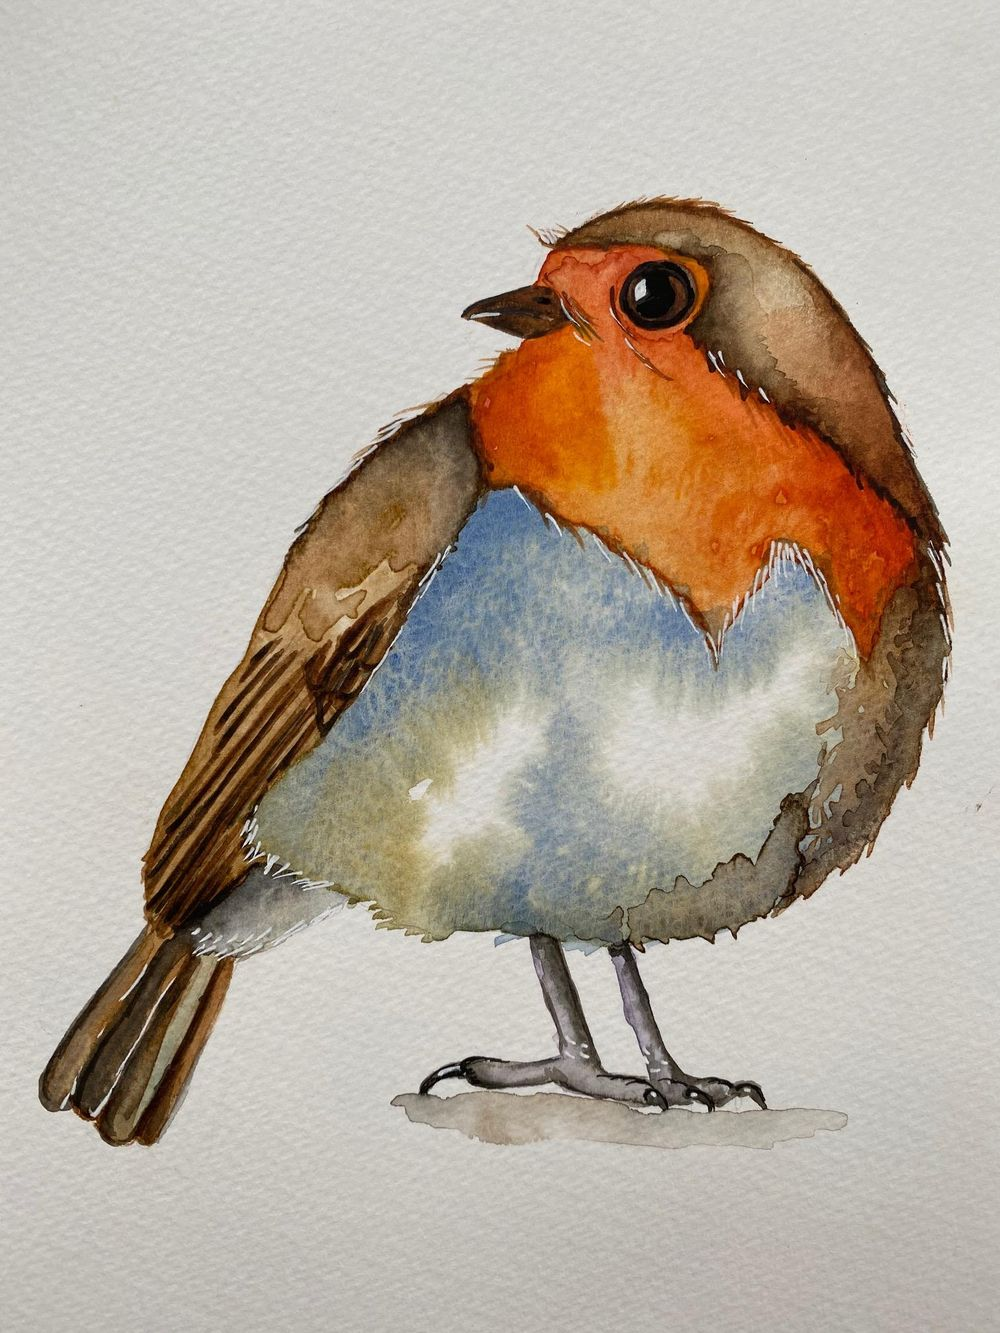 Robin - image 2 - student project